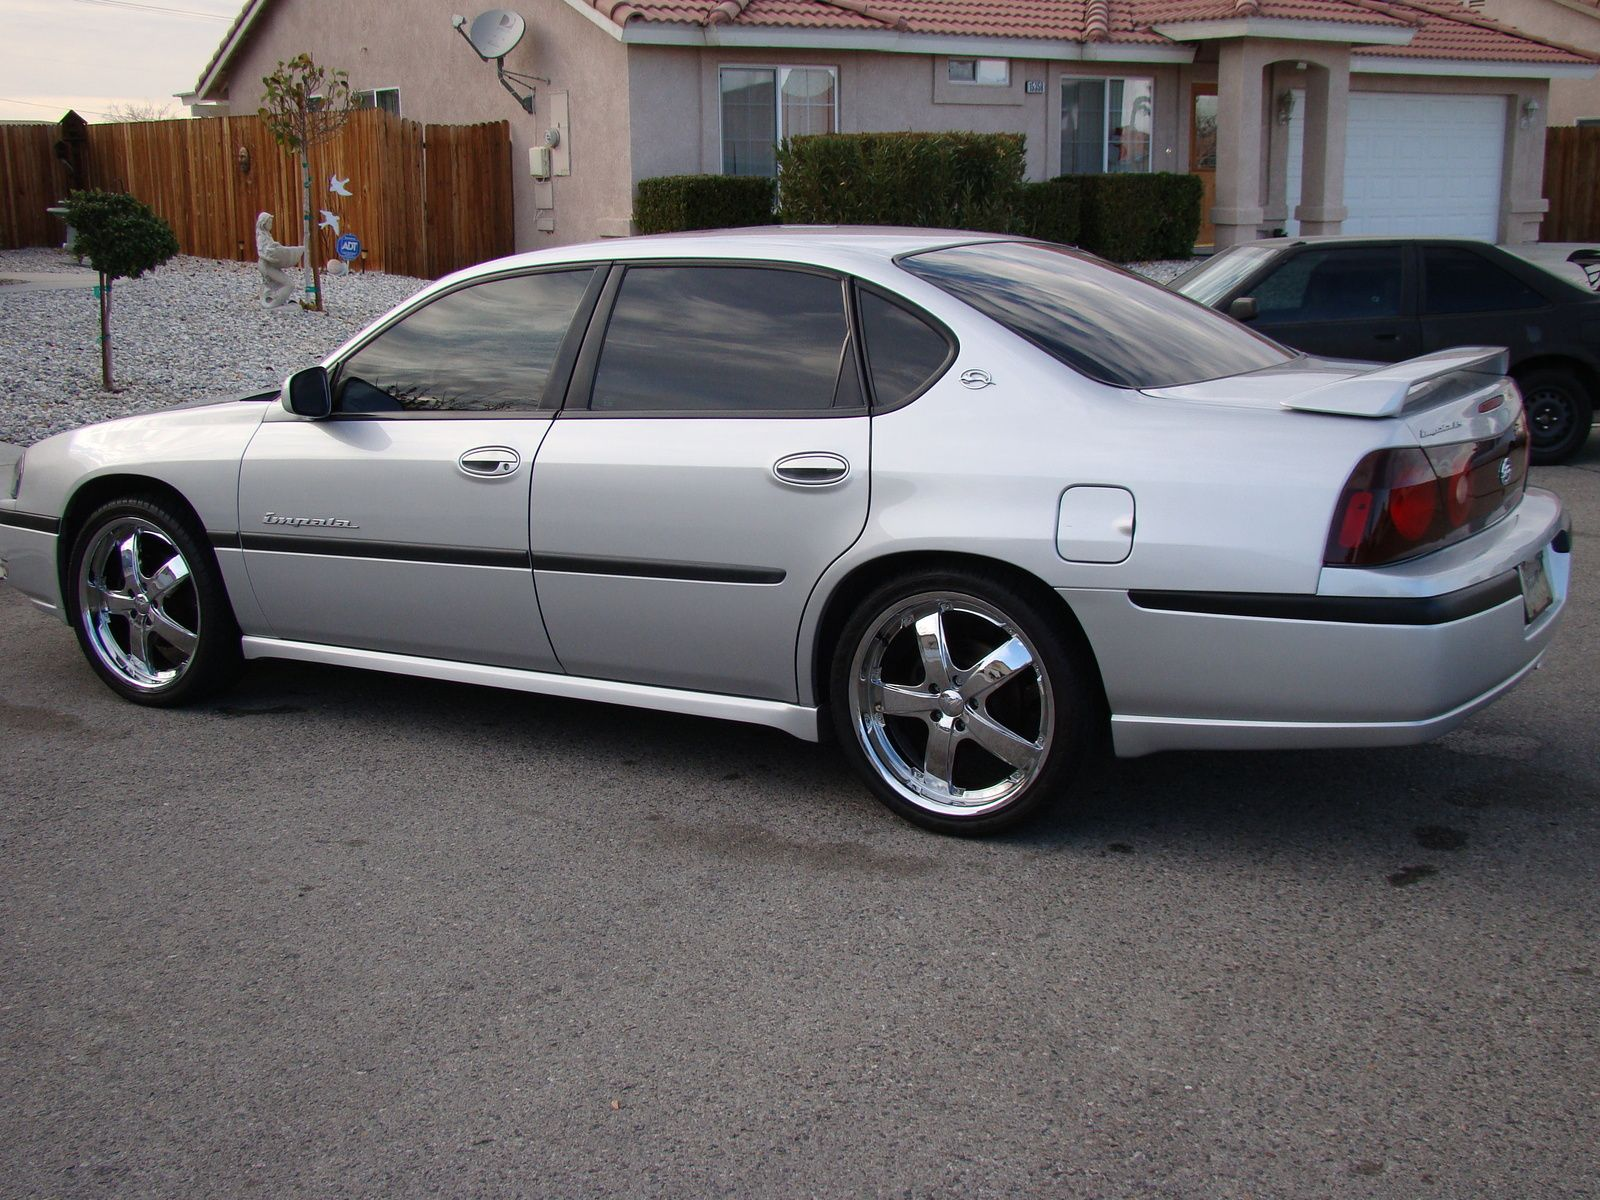 hight resolution of love this car 2000 chevrolet impala ls for fuel efficiency with 2000 chevrolet impala ls this is the car you want